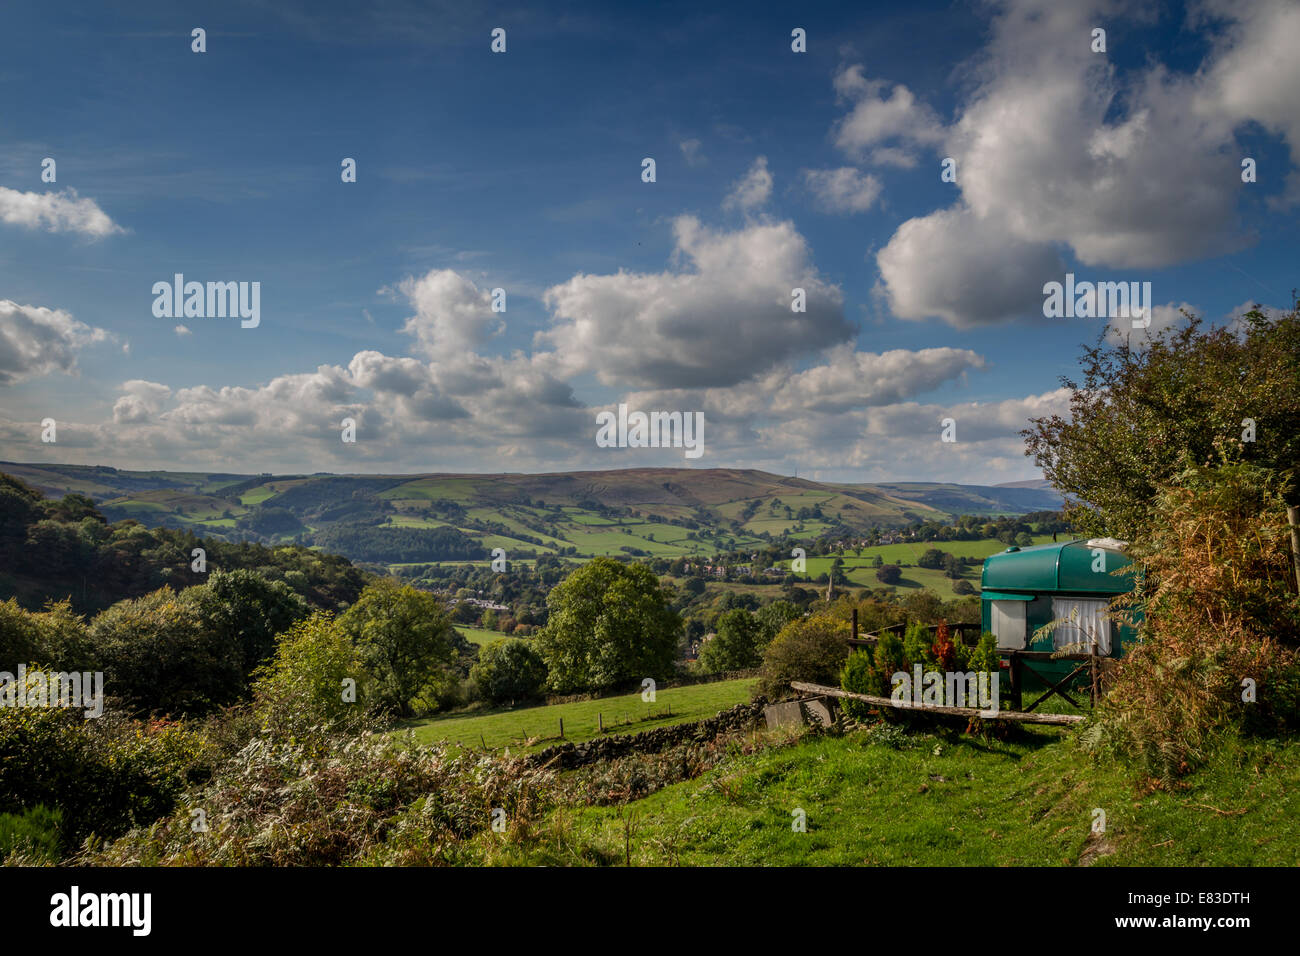 Alternative housing - a view with a room, Derbyshire, UK - Stock Image